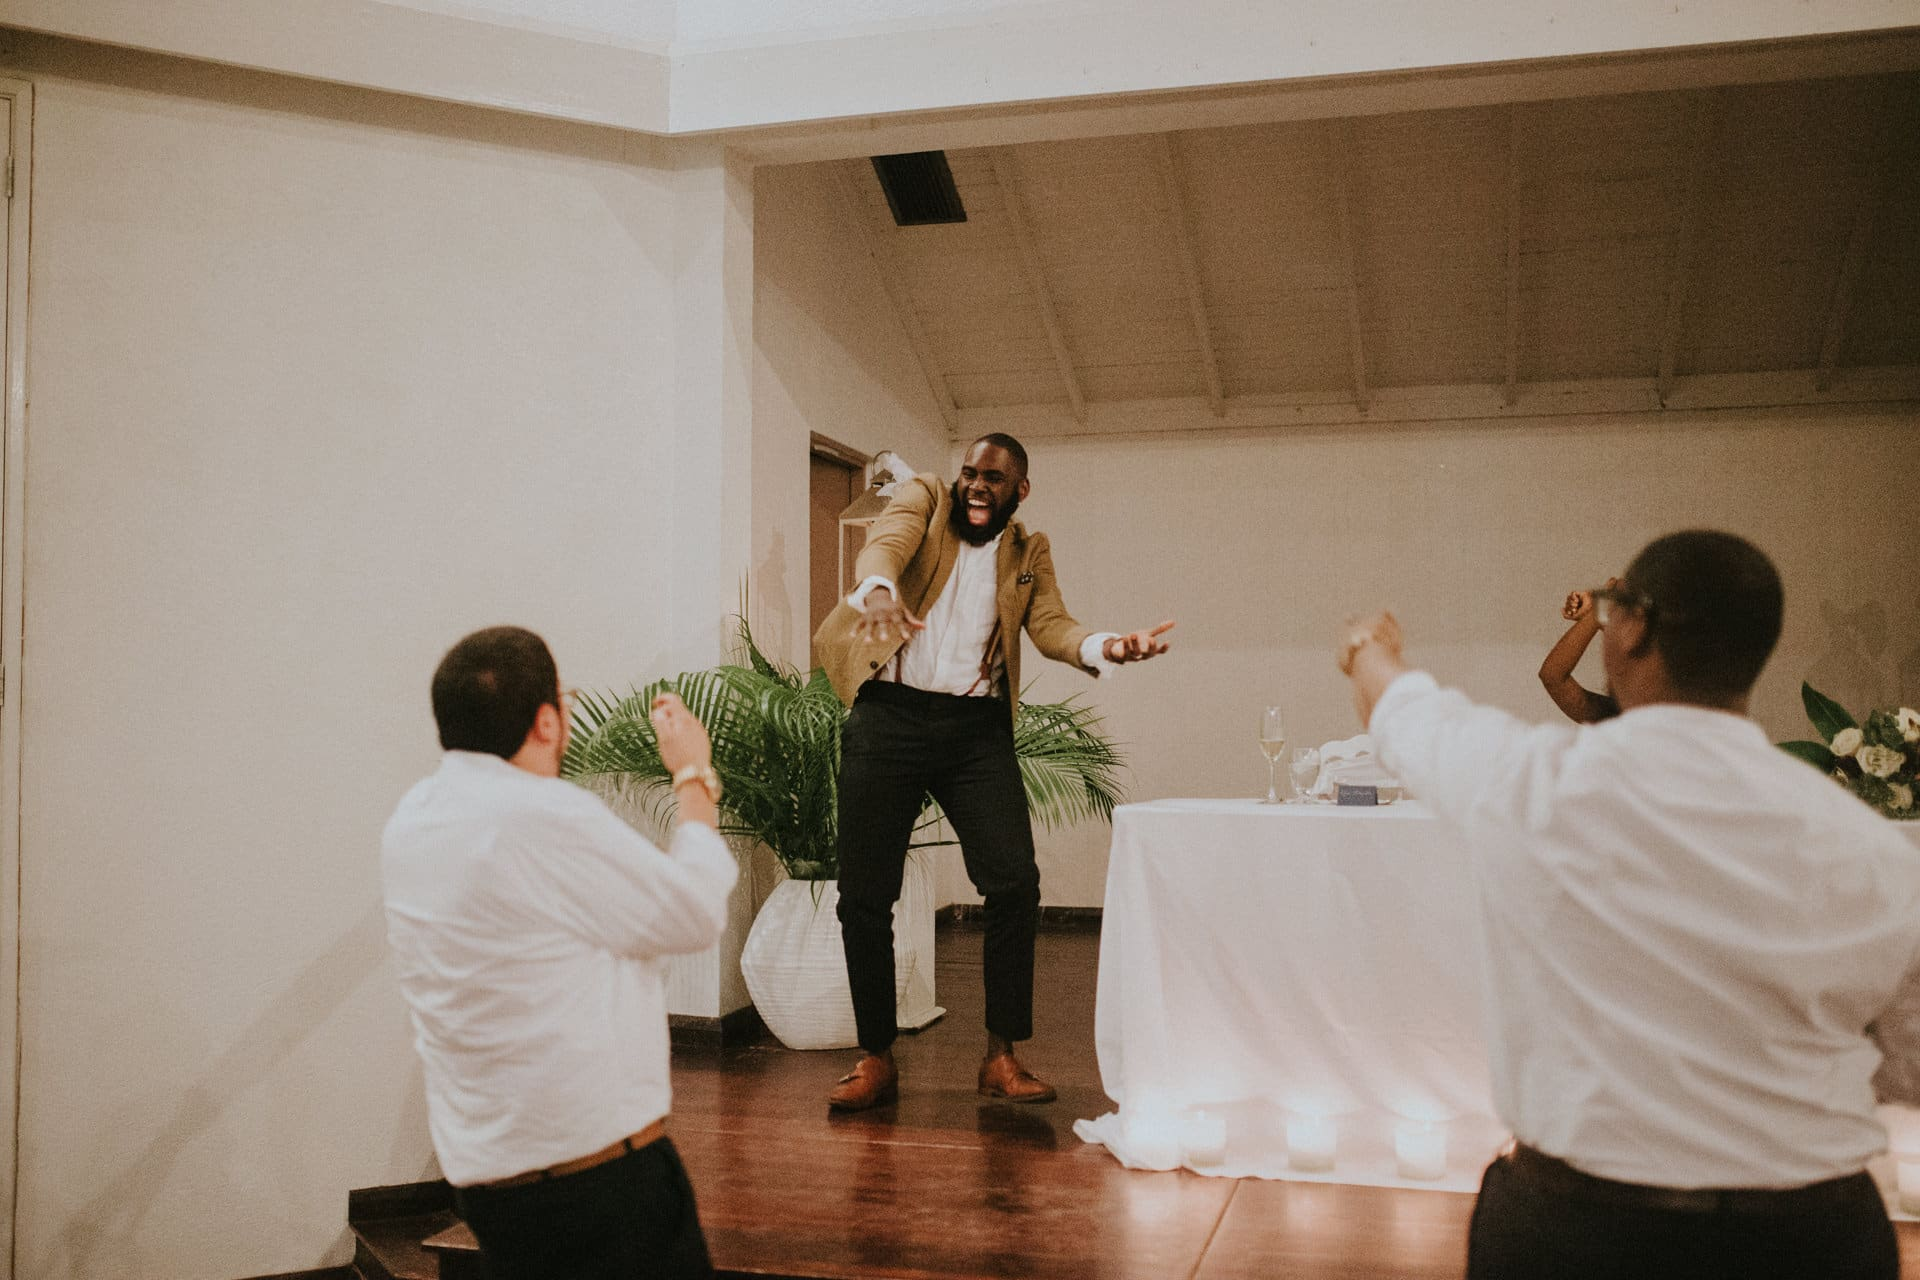 The groom is dancing and laughing.